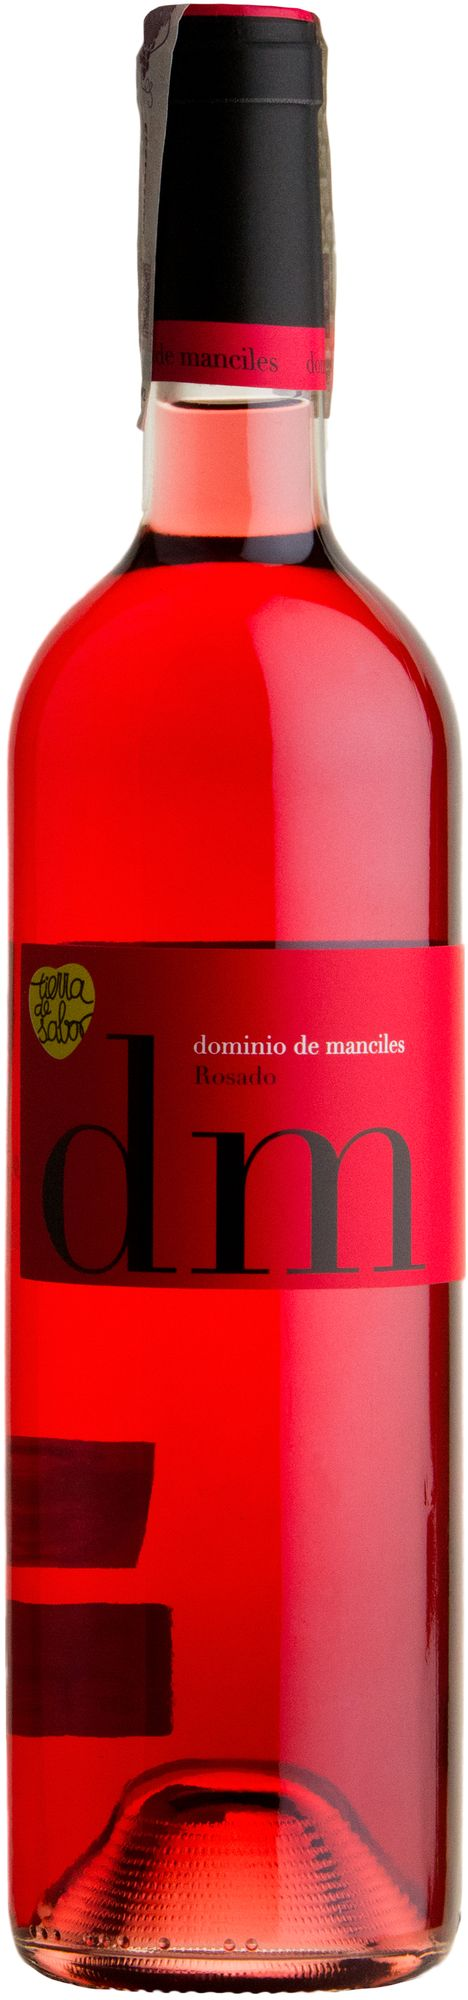 Wino Arlanza Dominio de Manciles Rose Arlanza DO